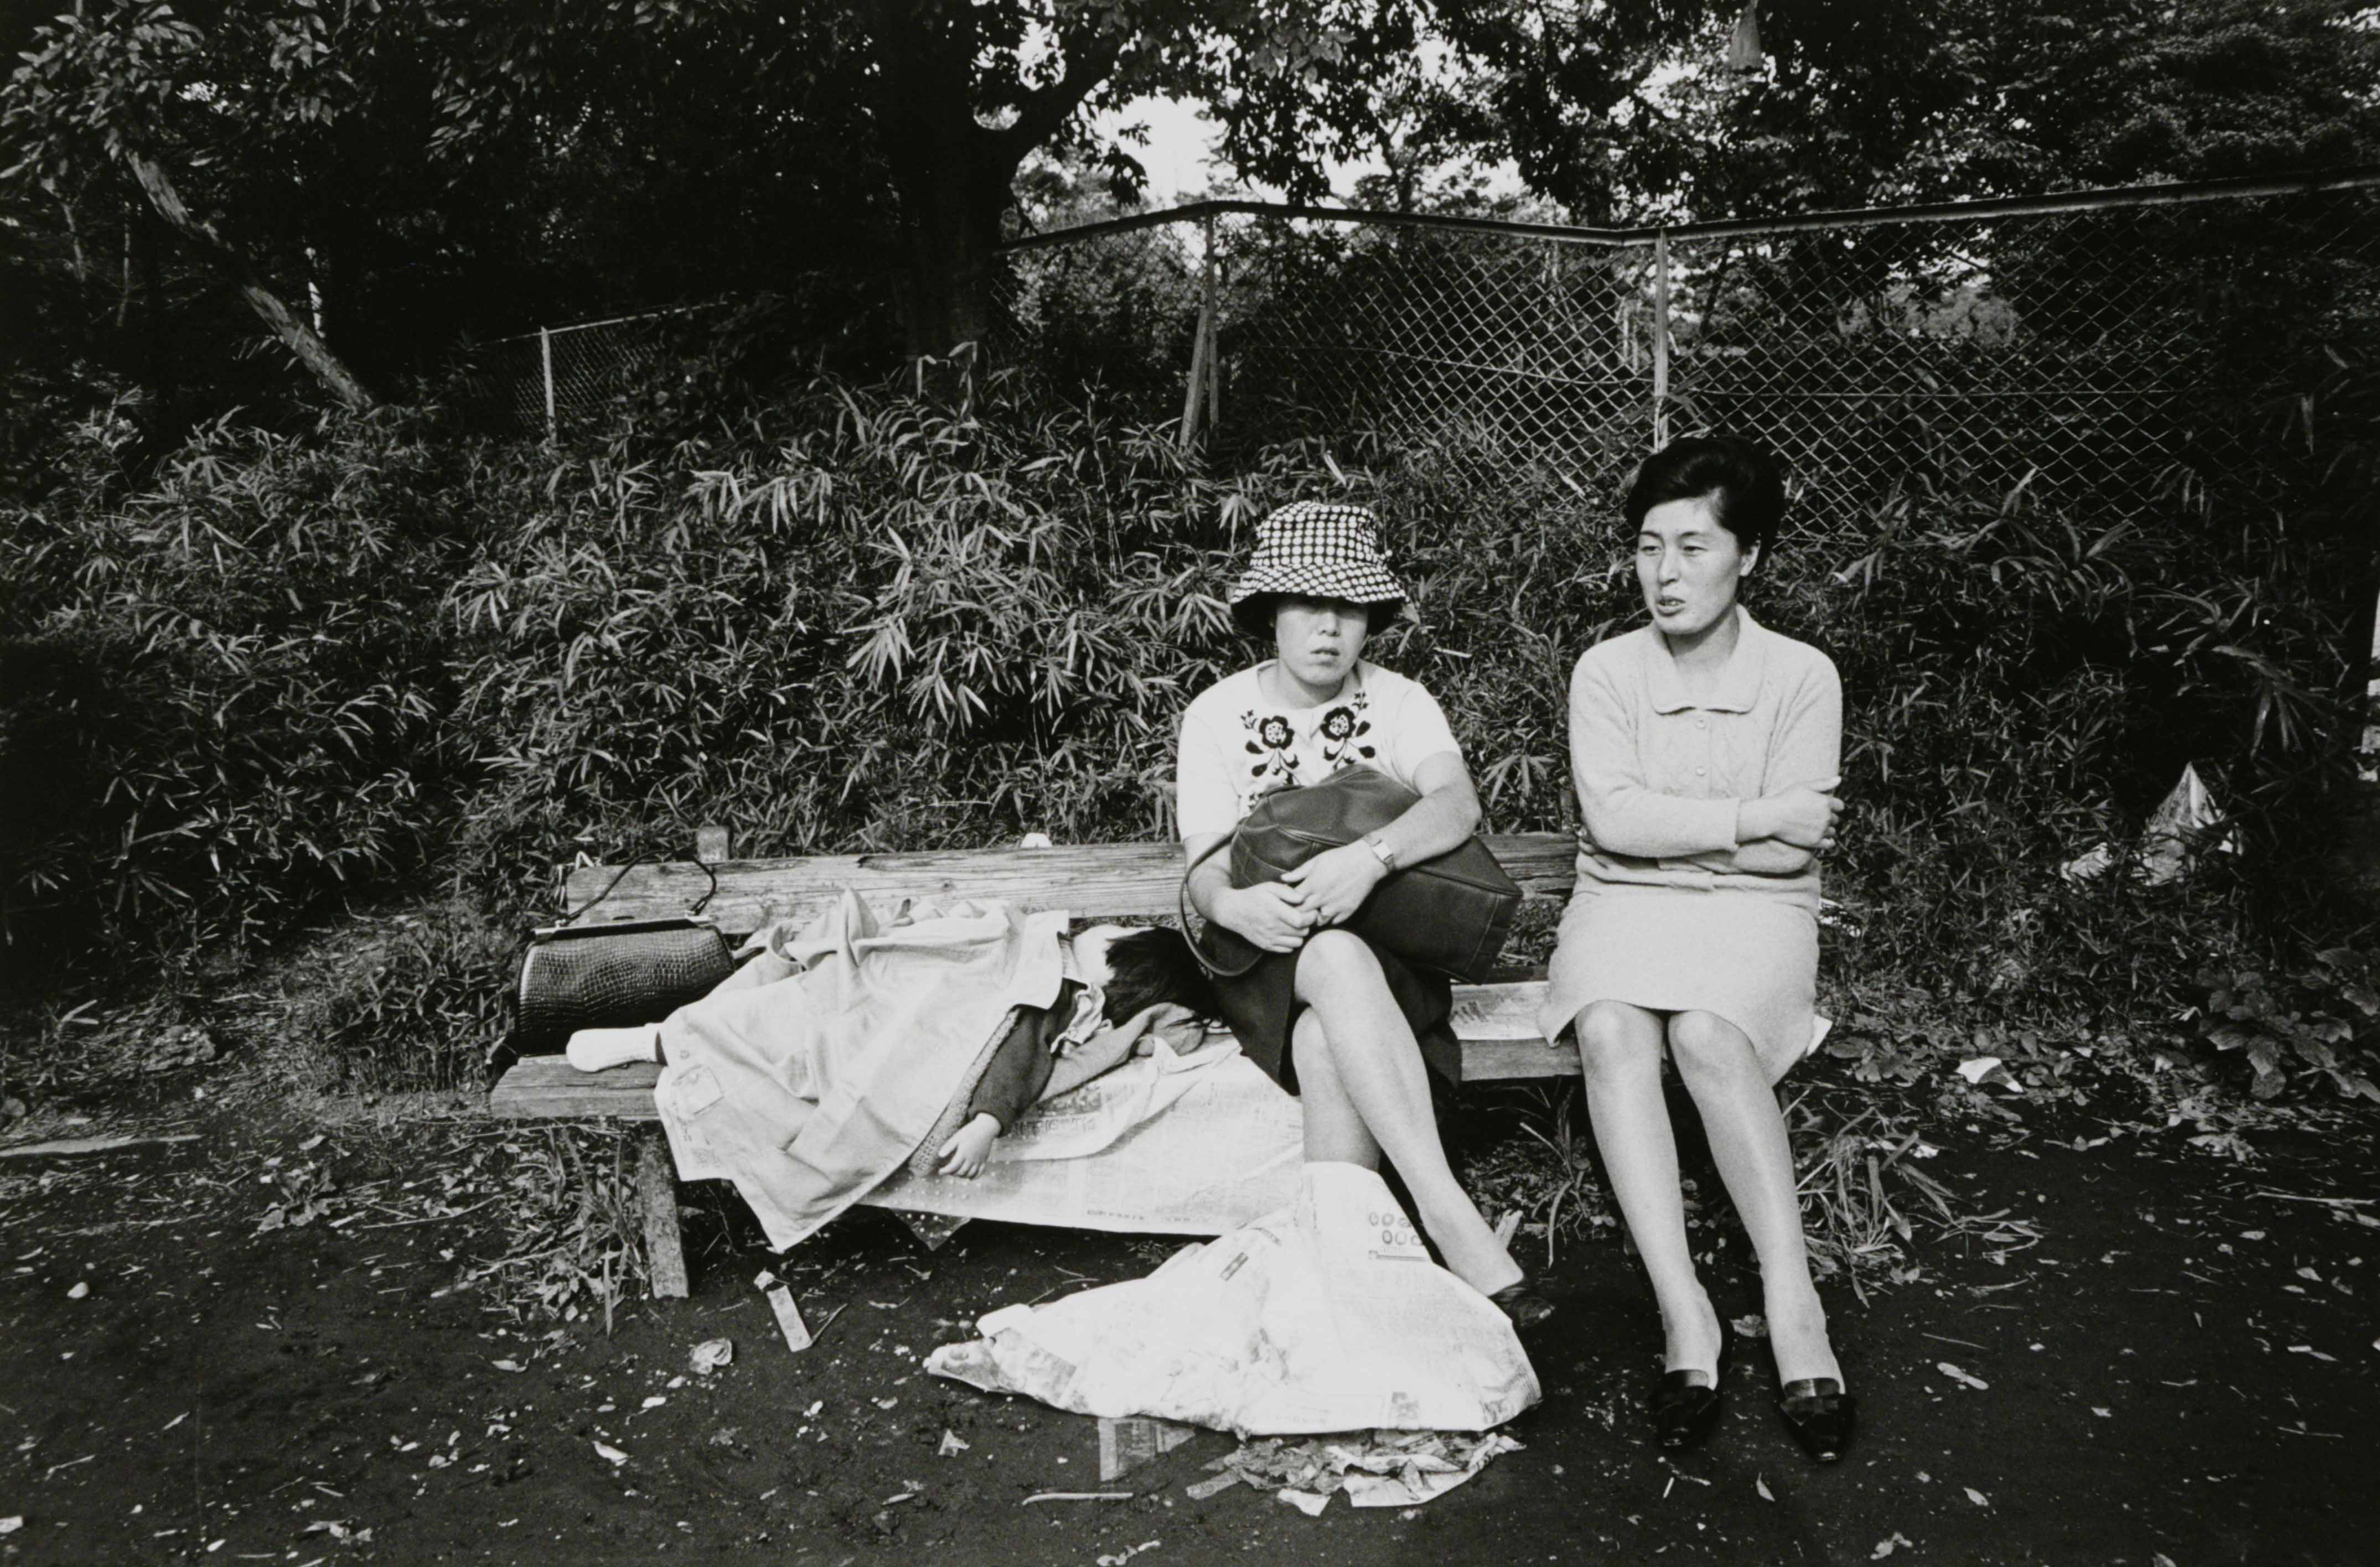 From Shigeo Gocho's series 'Days' (1967-70)   Tokyo Metropolitan Museum of Photography